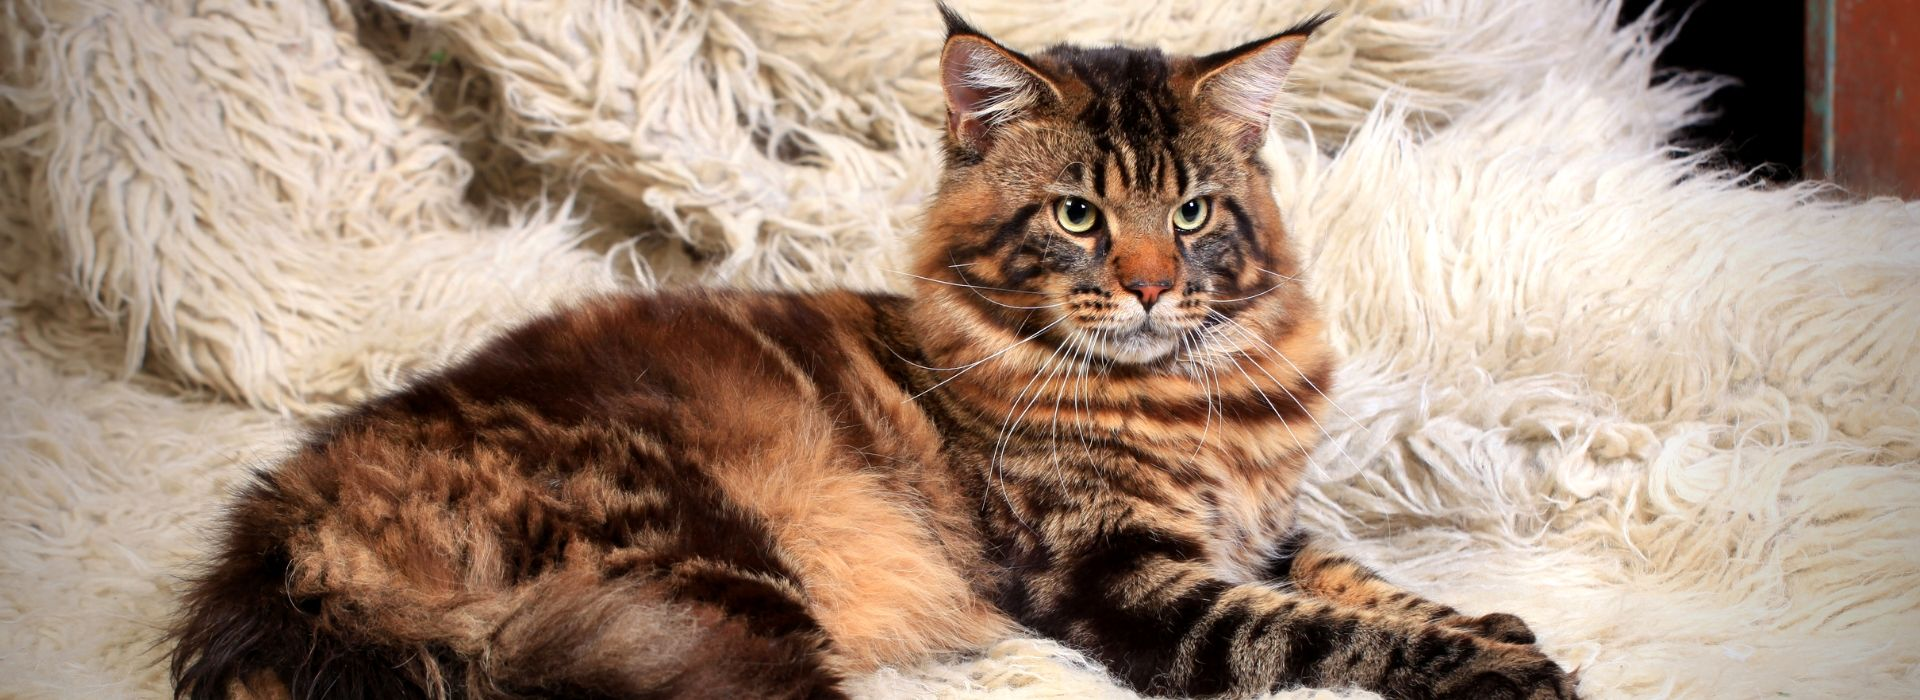 chat maine coon tabby brun